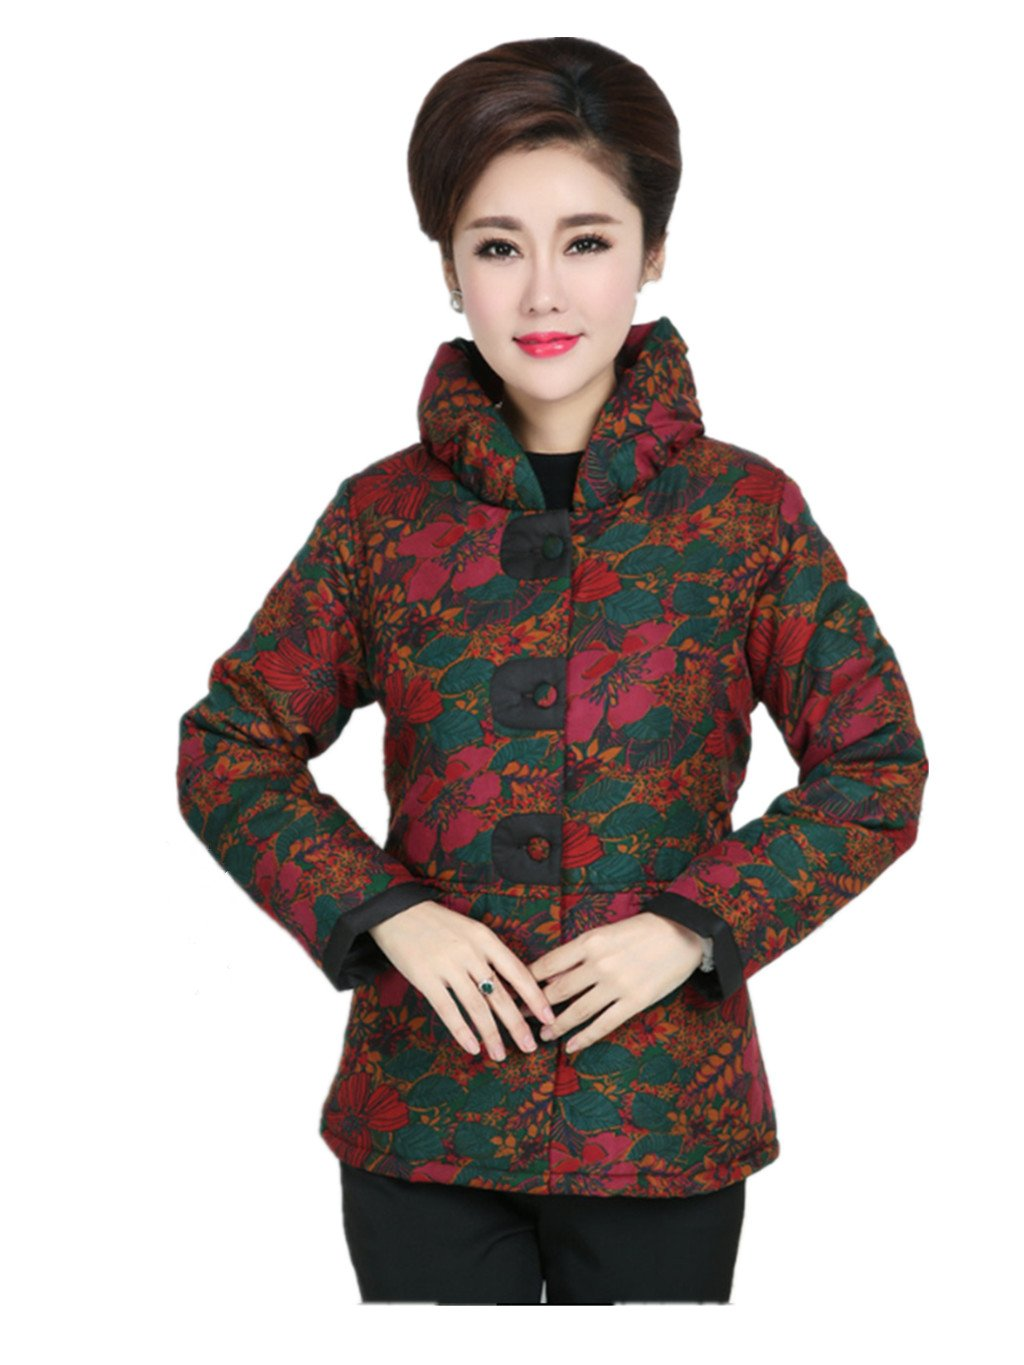 100% Mulberry Silk Womens Tang Suits Cotton-padded Jackets Chinese Coats Womens Jackets by Womens Tang Suit (Image #1)